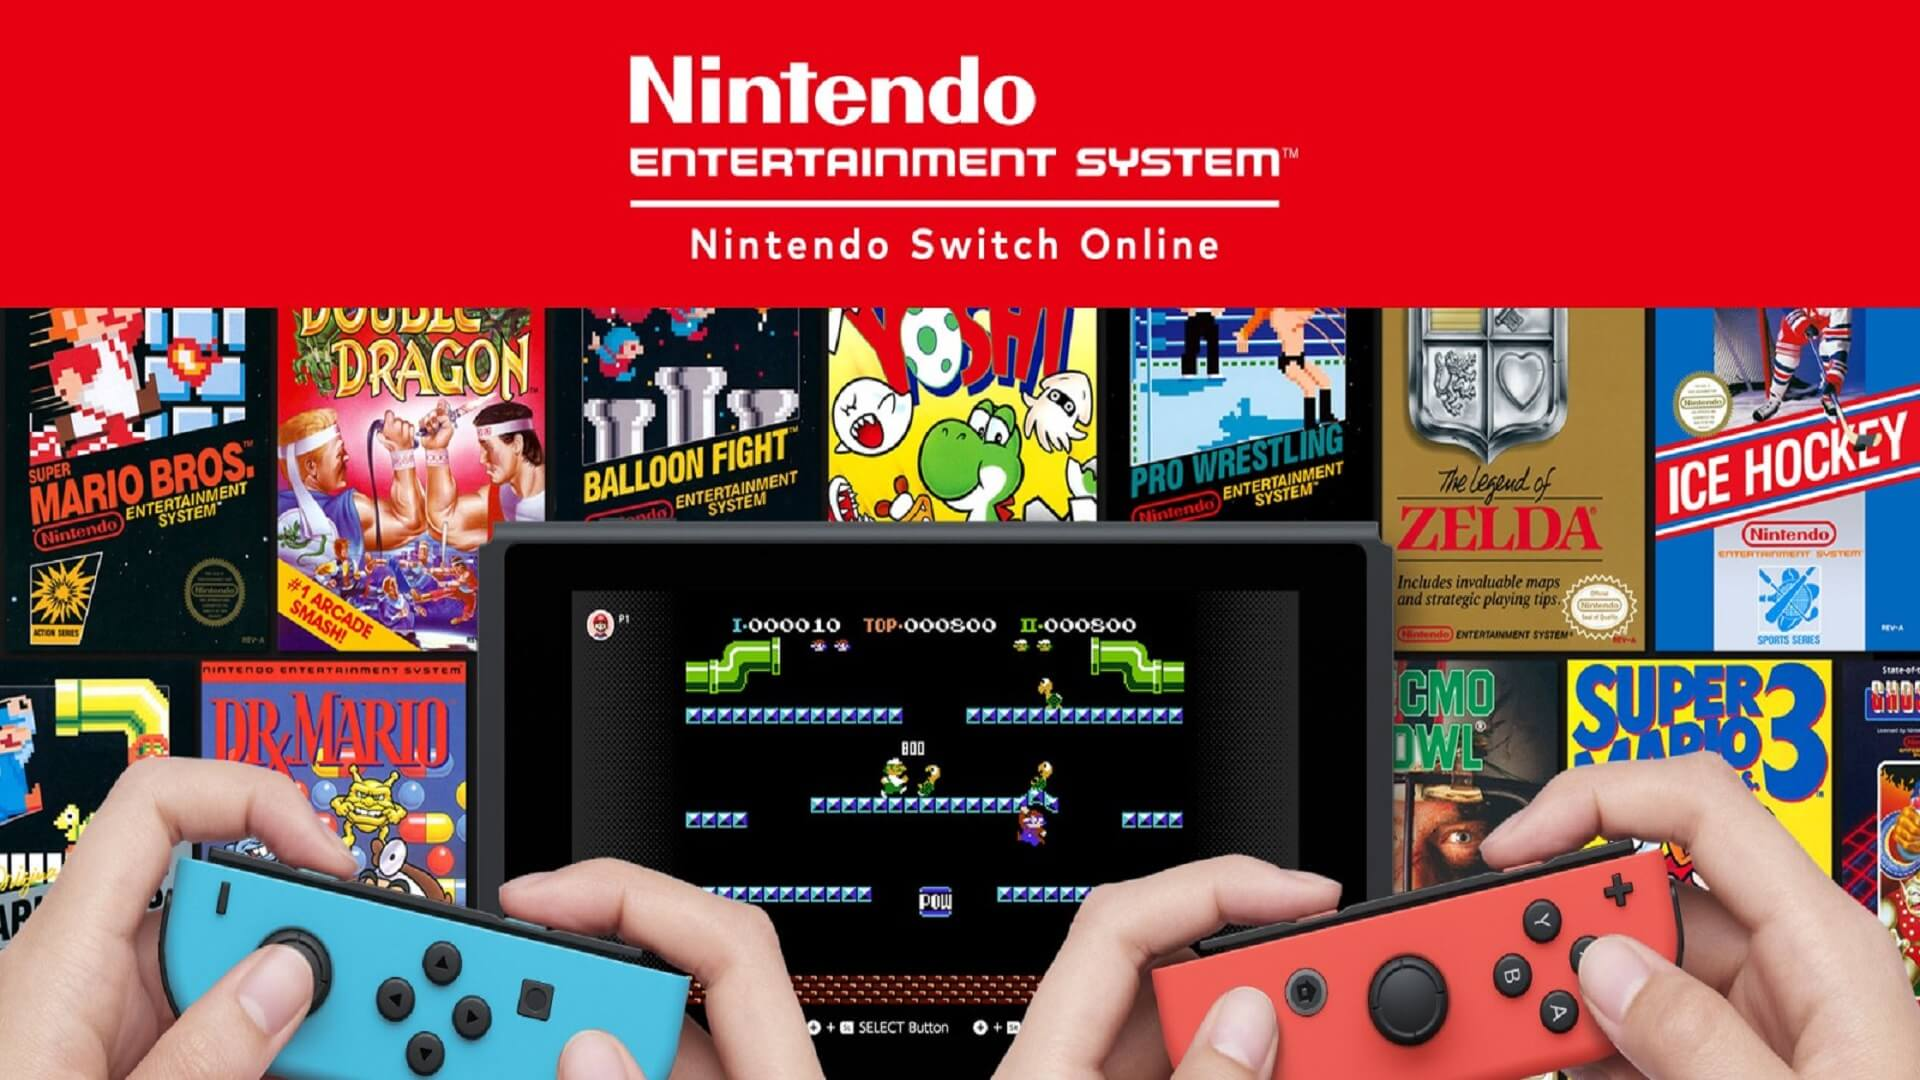 Nintendo Switch Online NES NintendOn